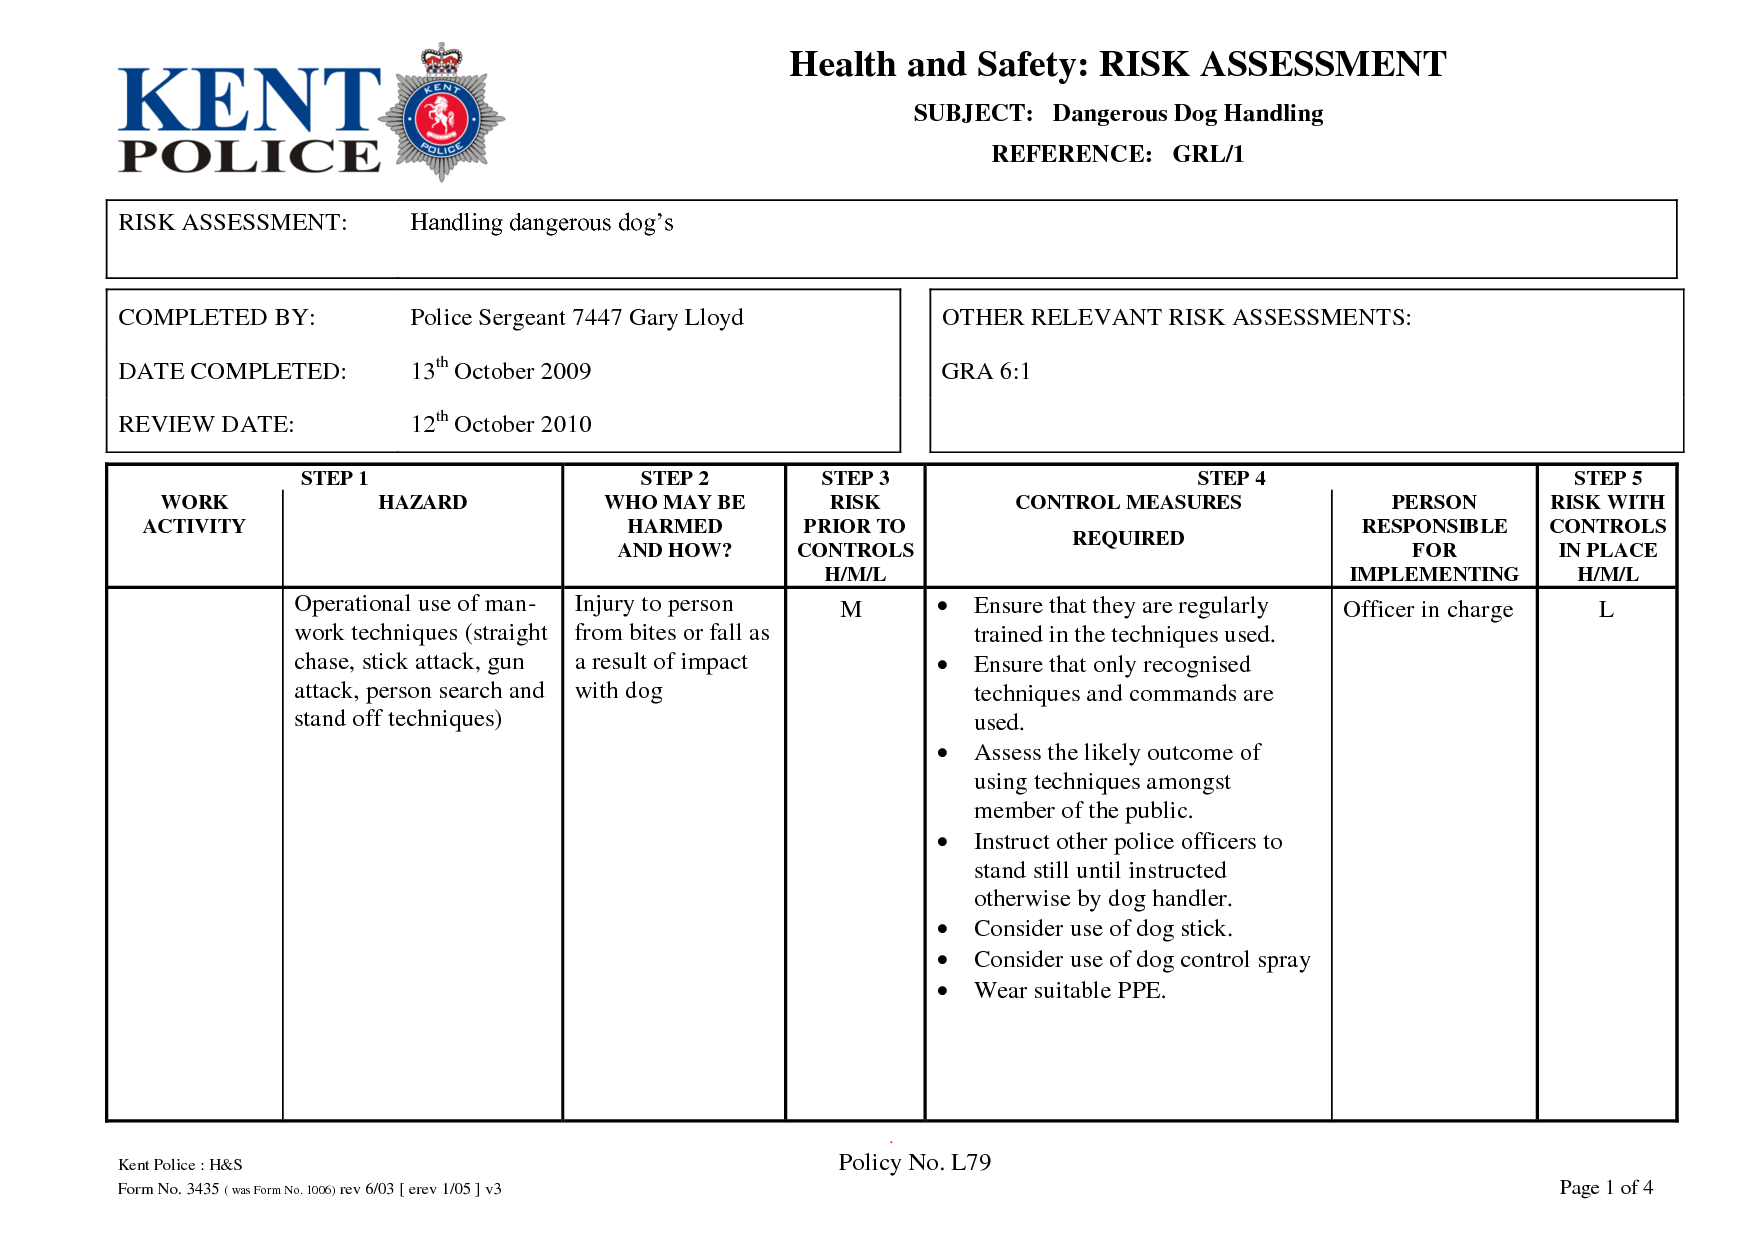 Risk Assessment Matrix Police Pursuit Yahoo Image Search Results – Health Safety Risk Assessment